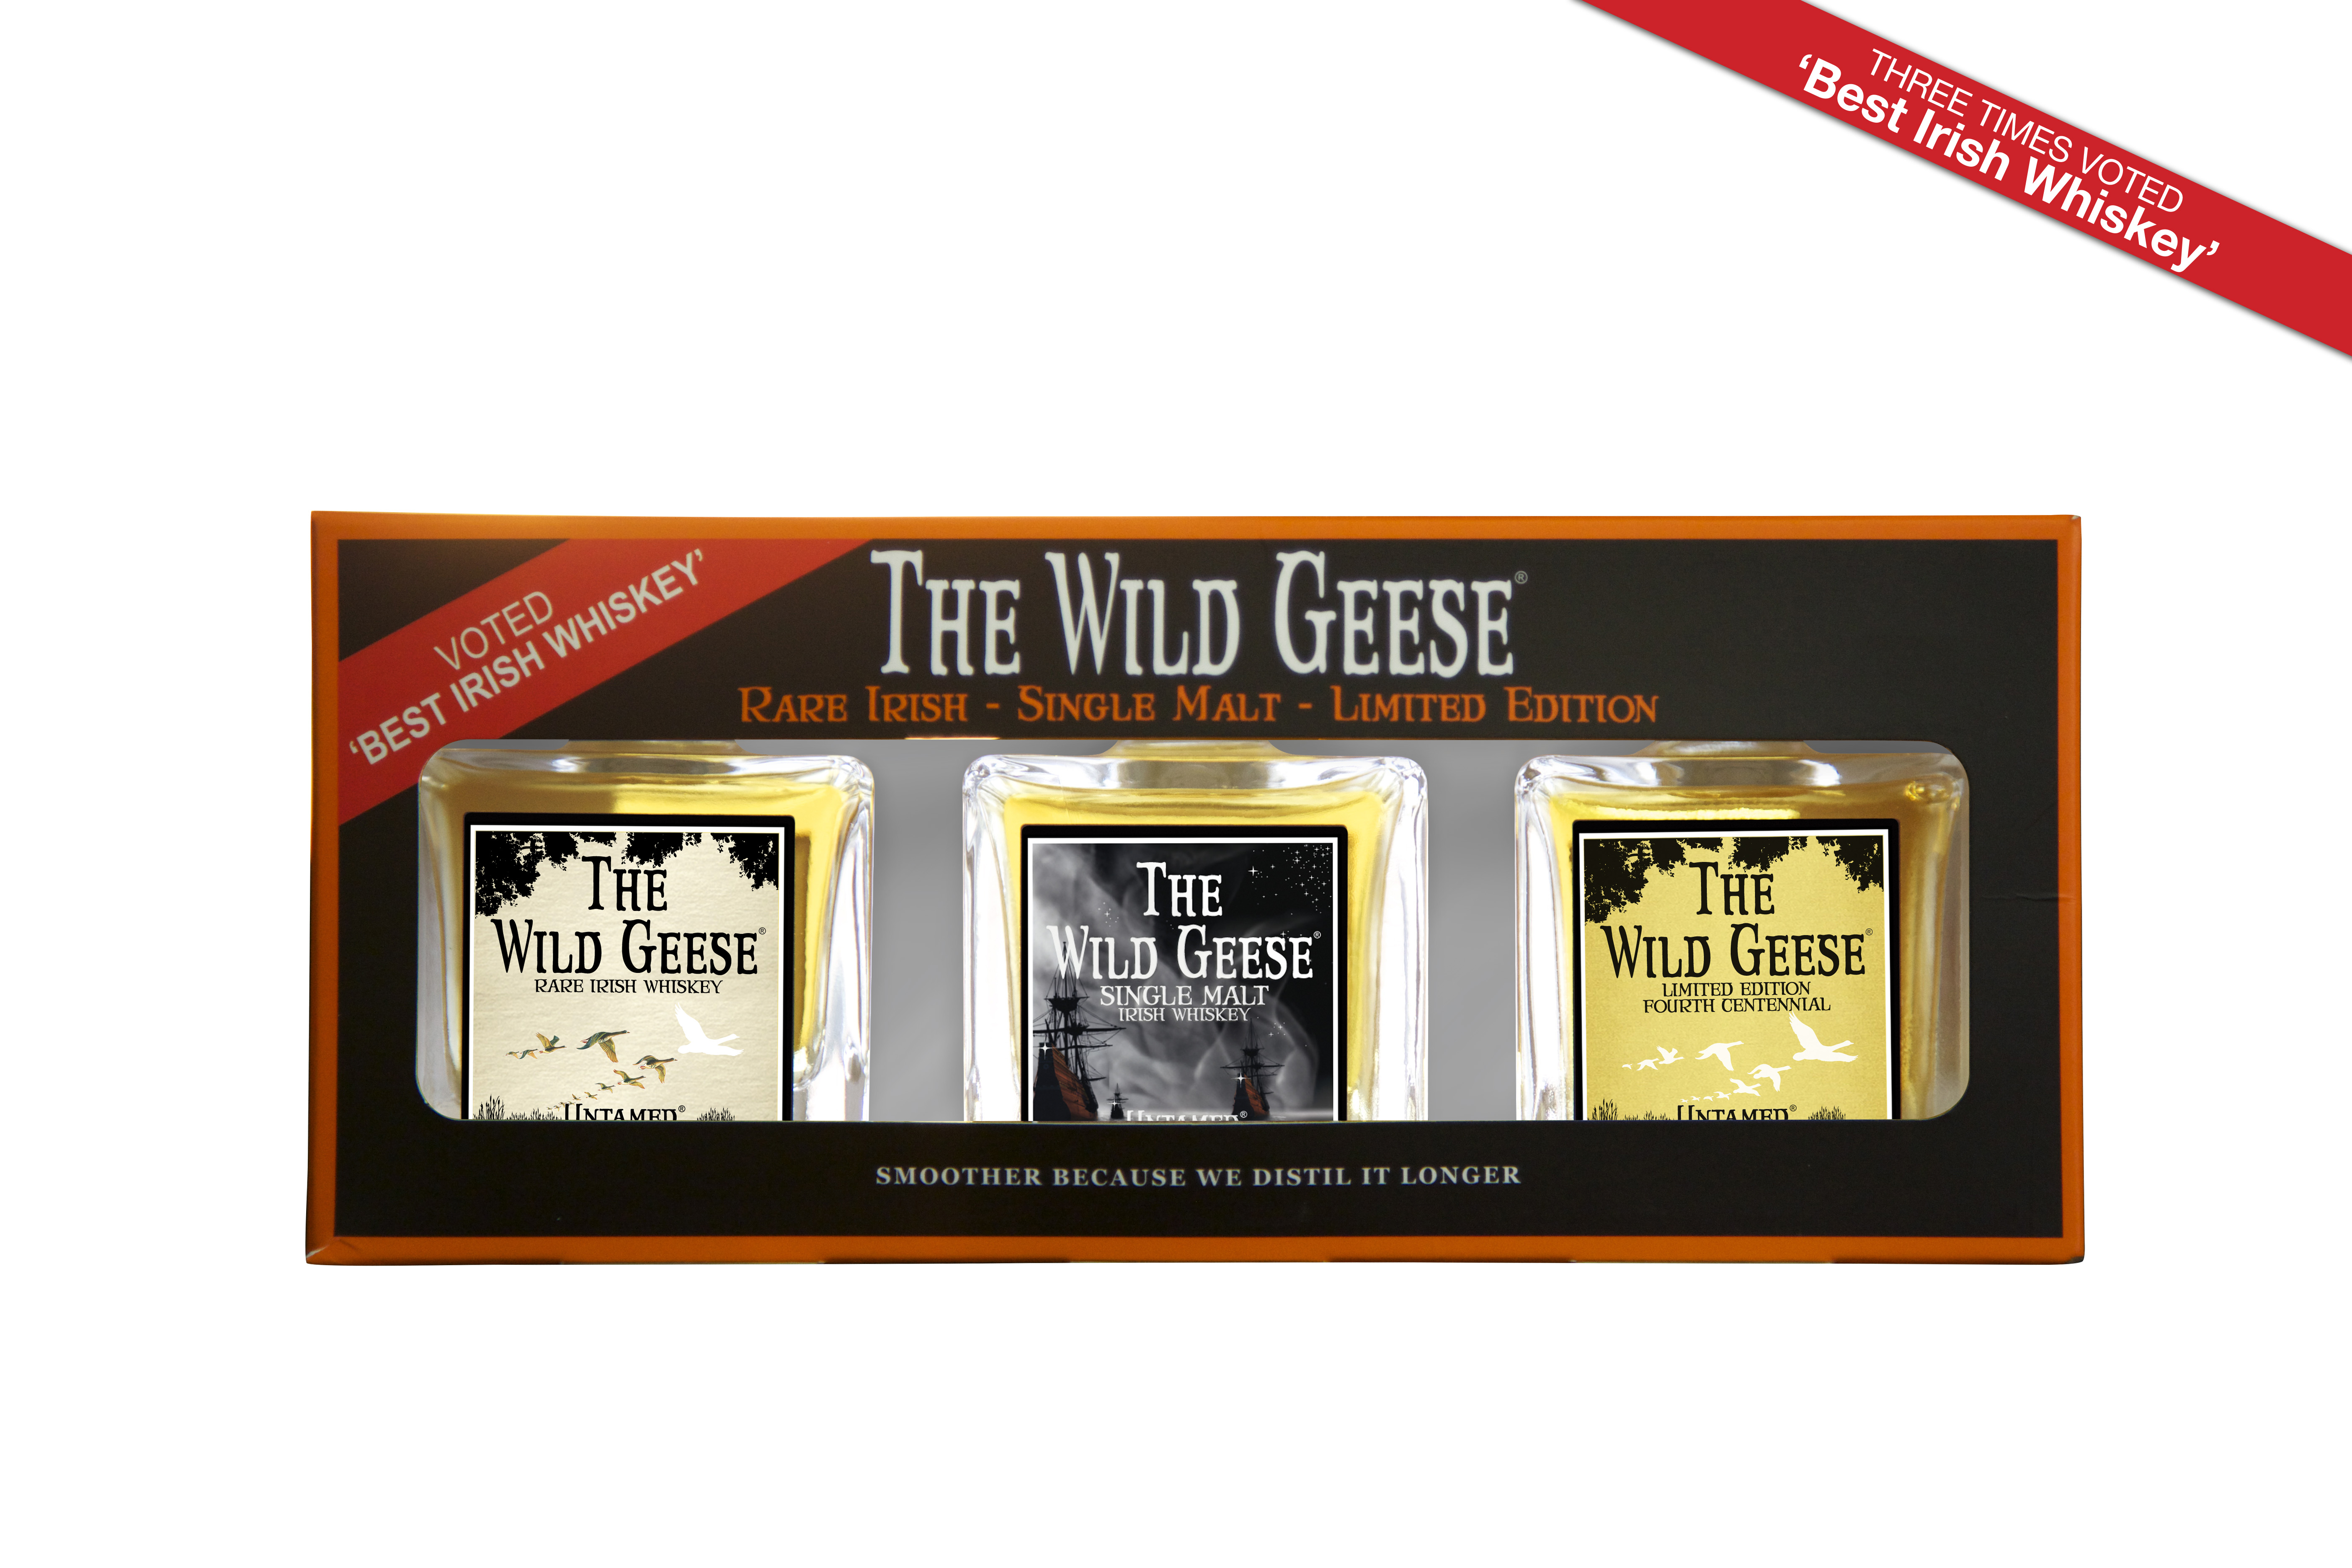 Thw Wild Geese Miniatures 2013